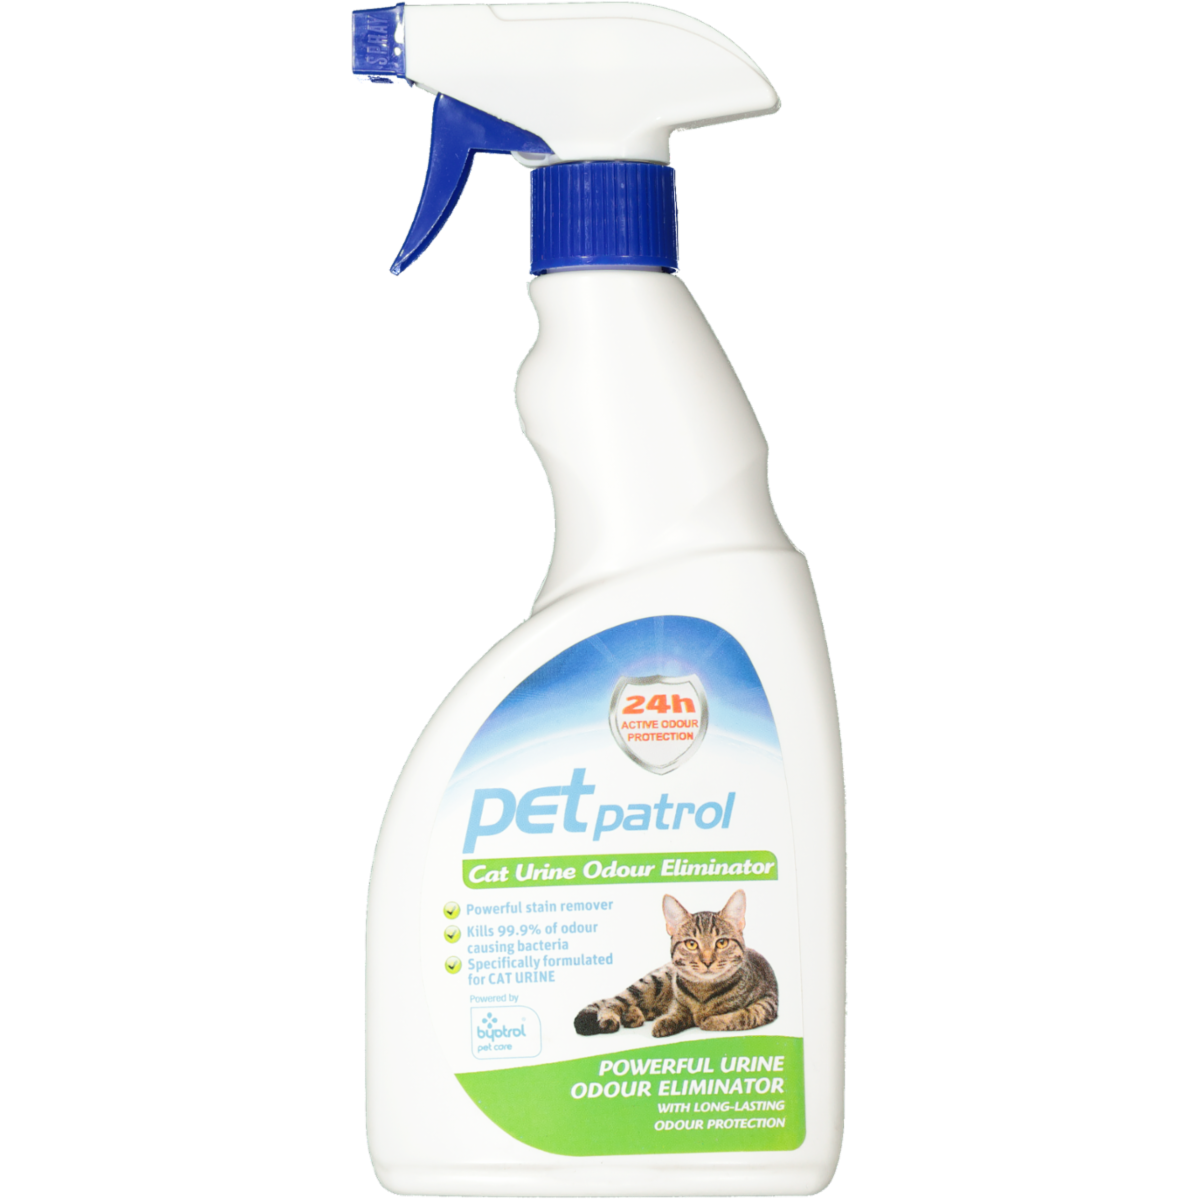 PET PATROL CAT URI ODOUR ELIMINATOR